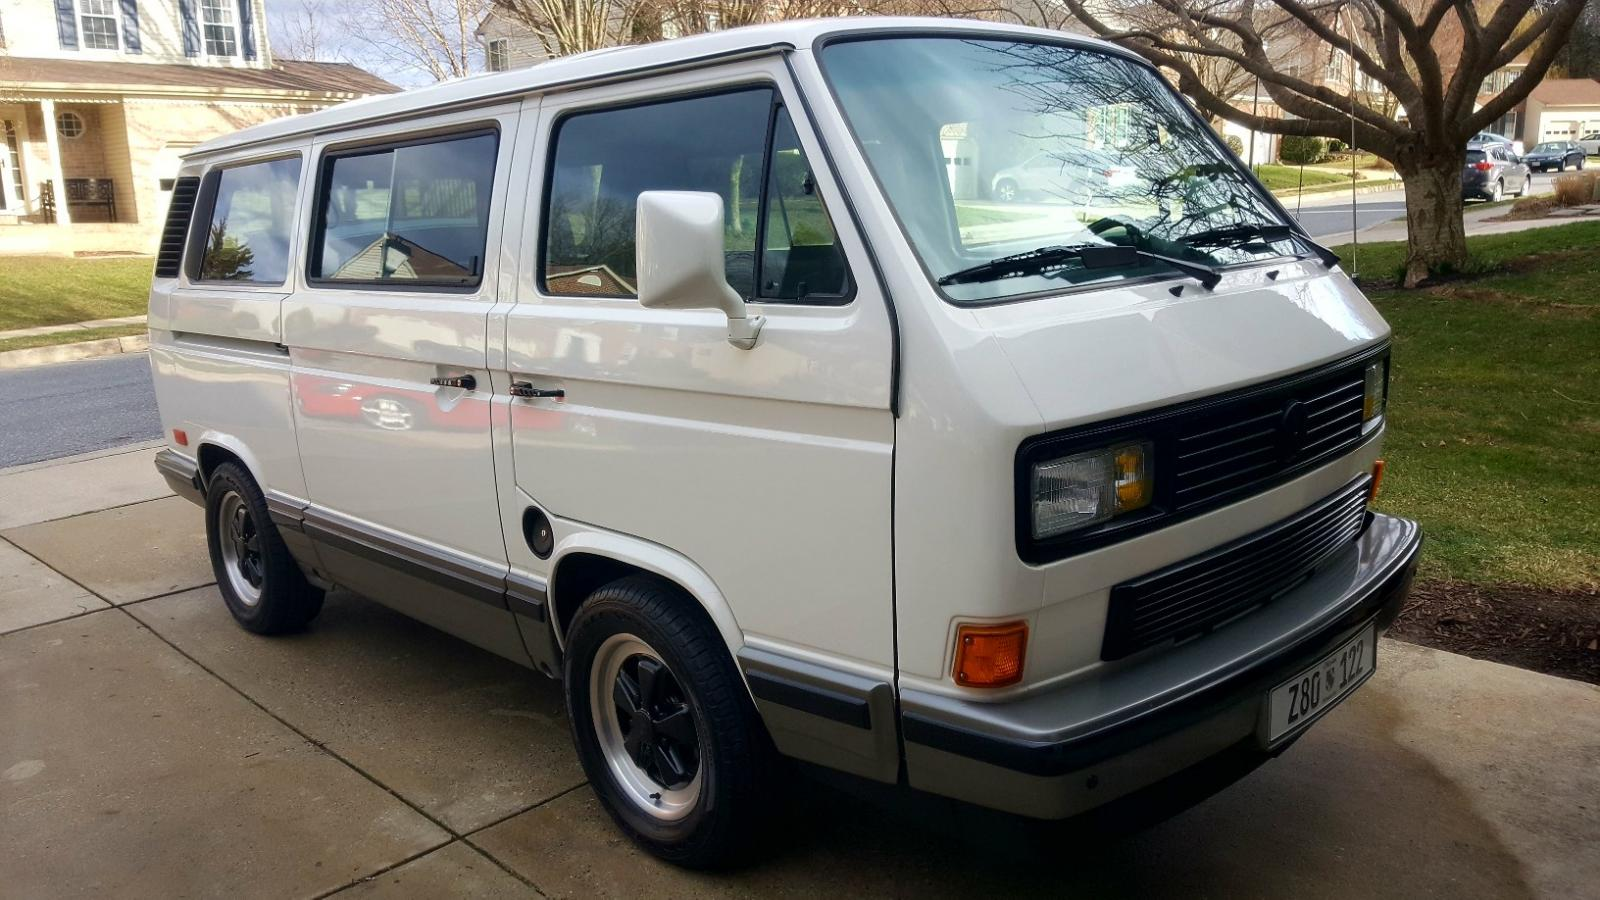 FUCHed up the Vanagon